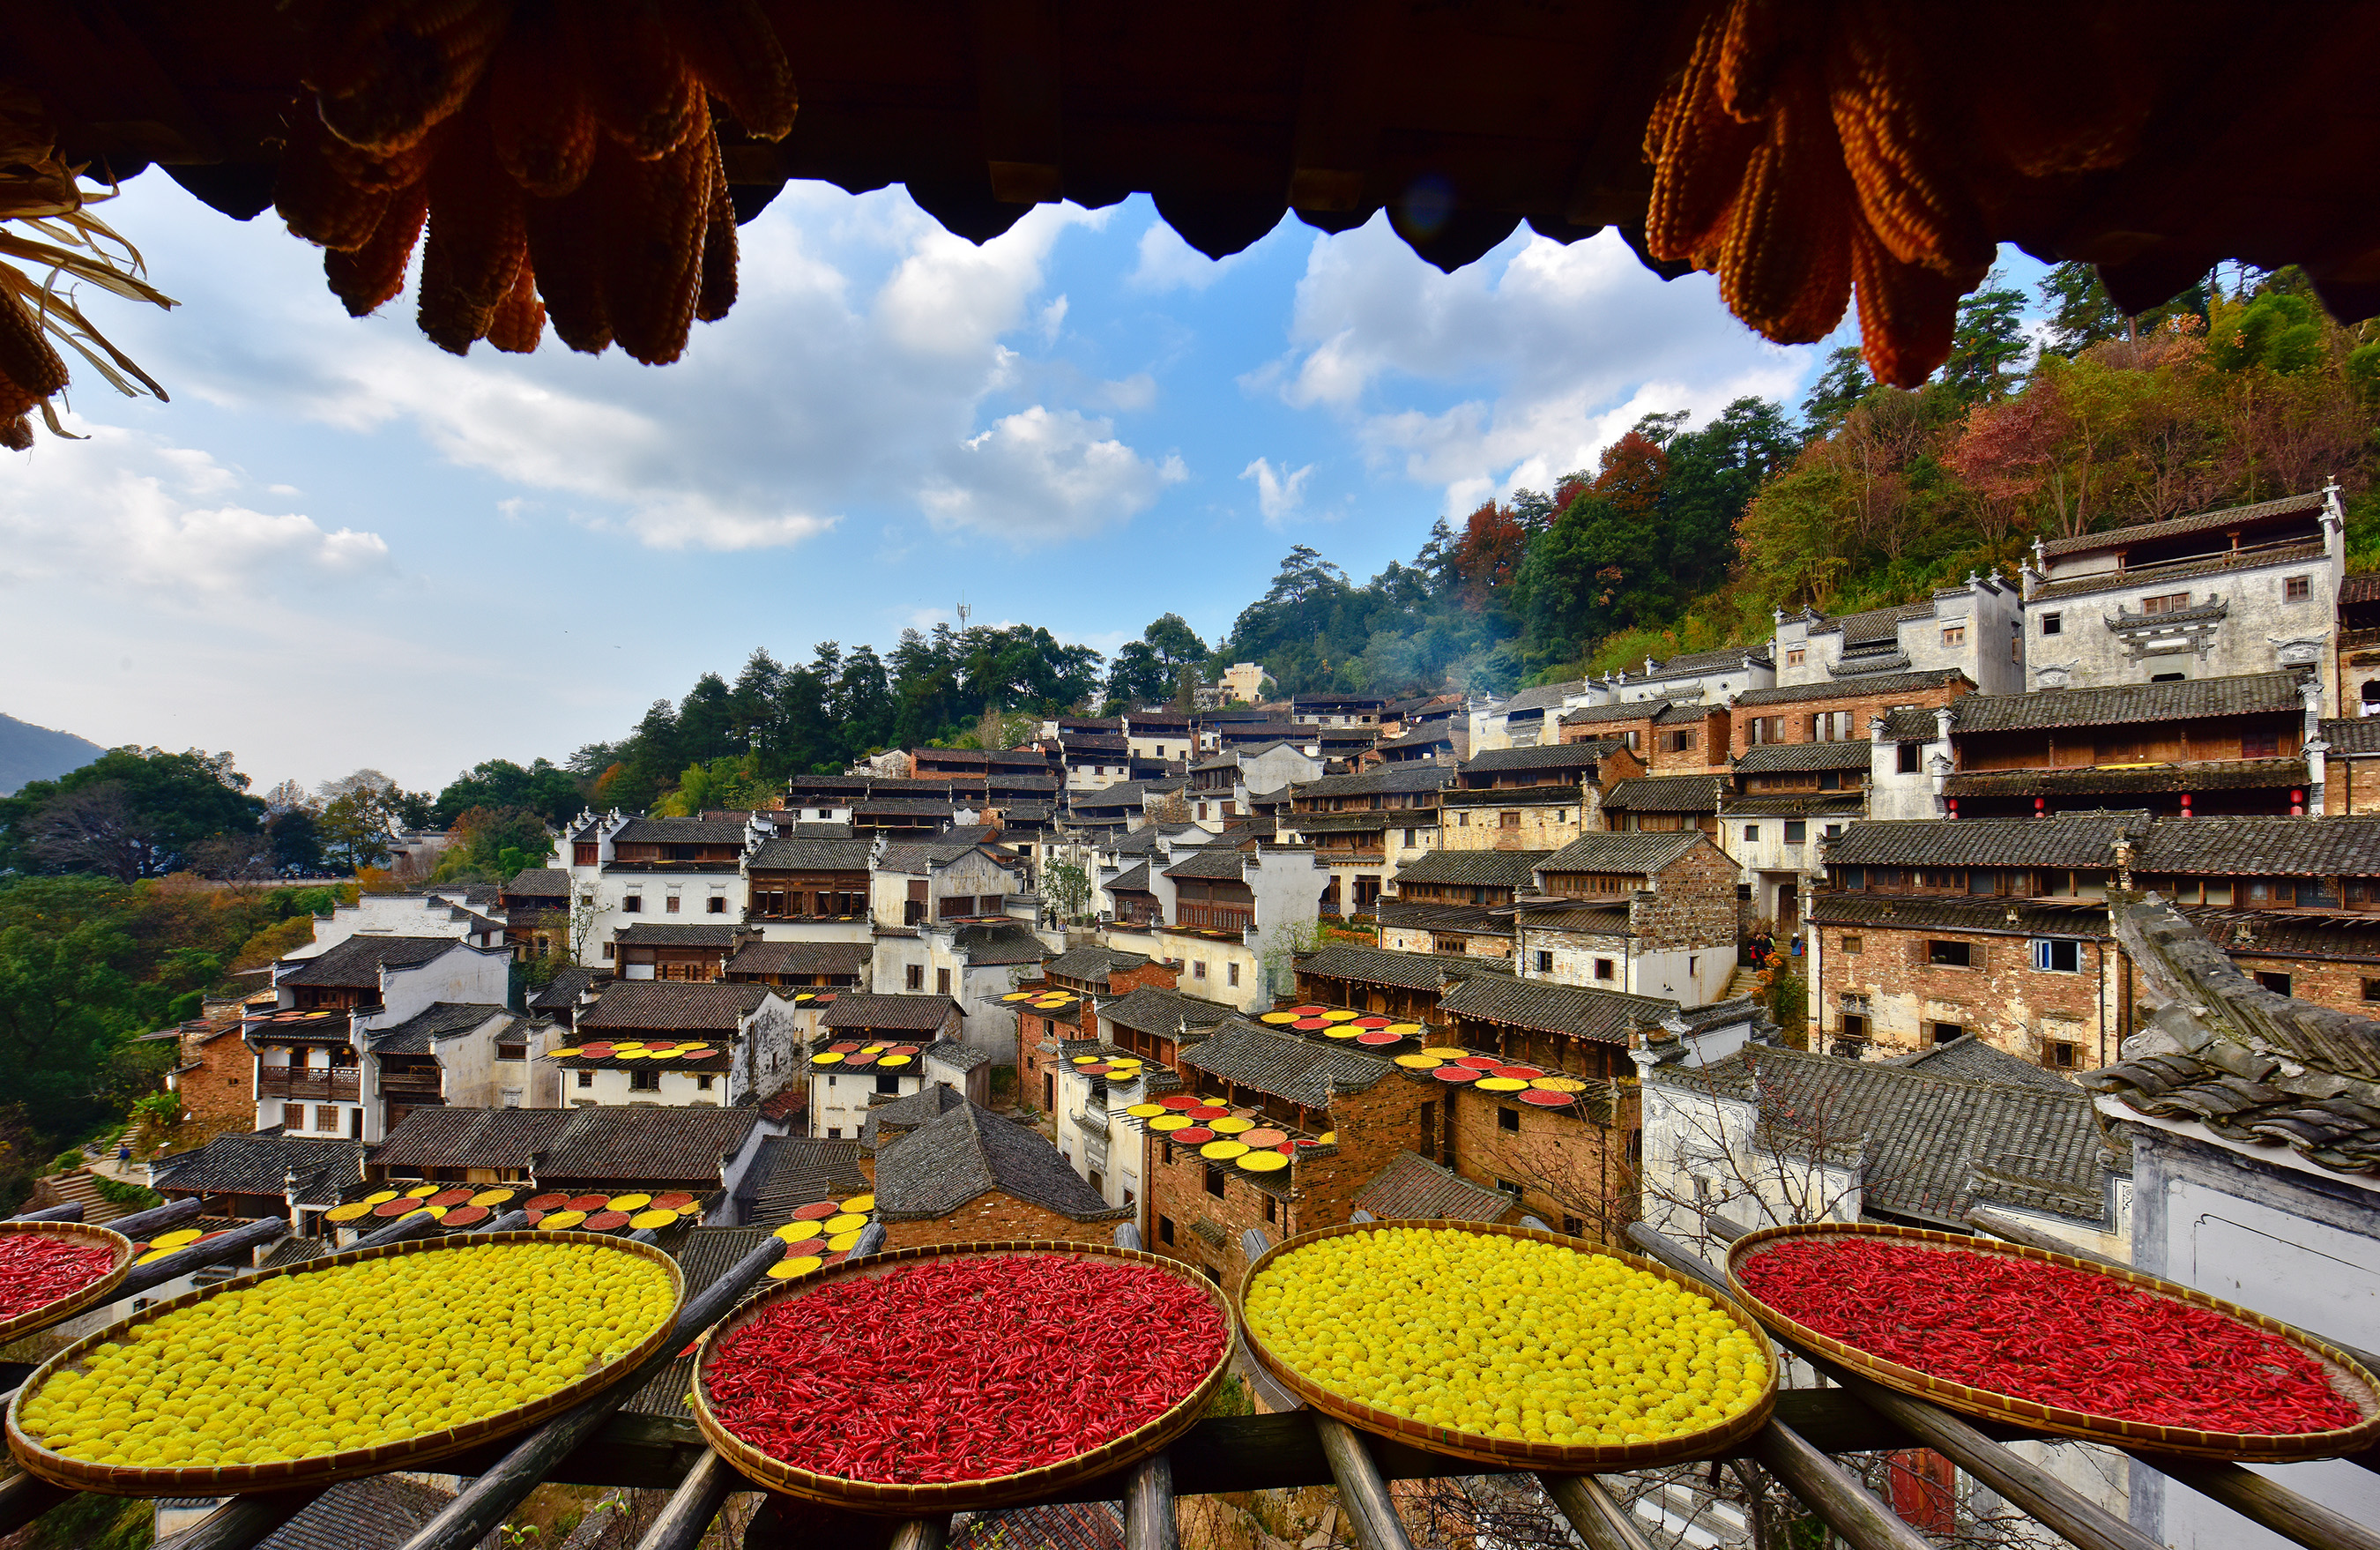 The unique view of shaiqiu can only be found in Huangling village where baskets of colorful harvest bask in the sunshine. (1)